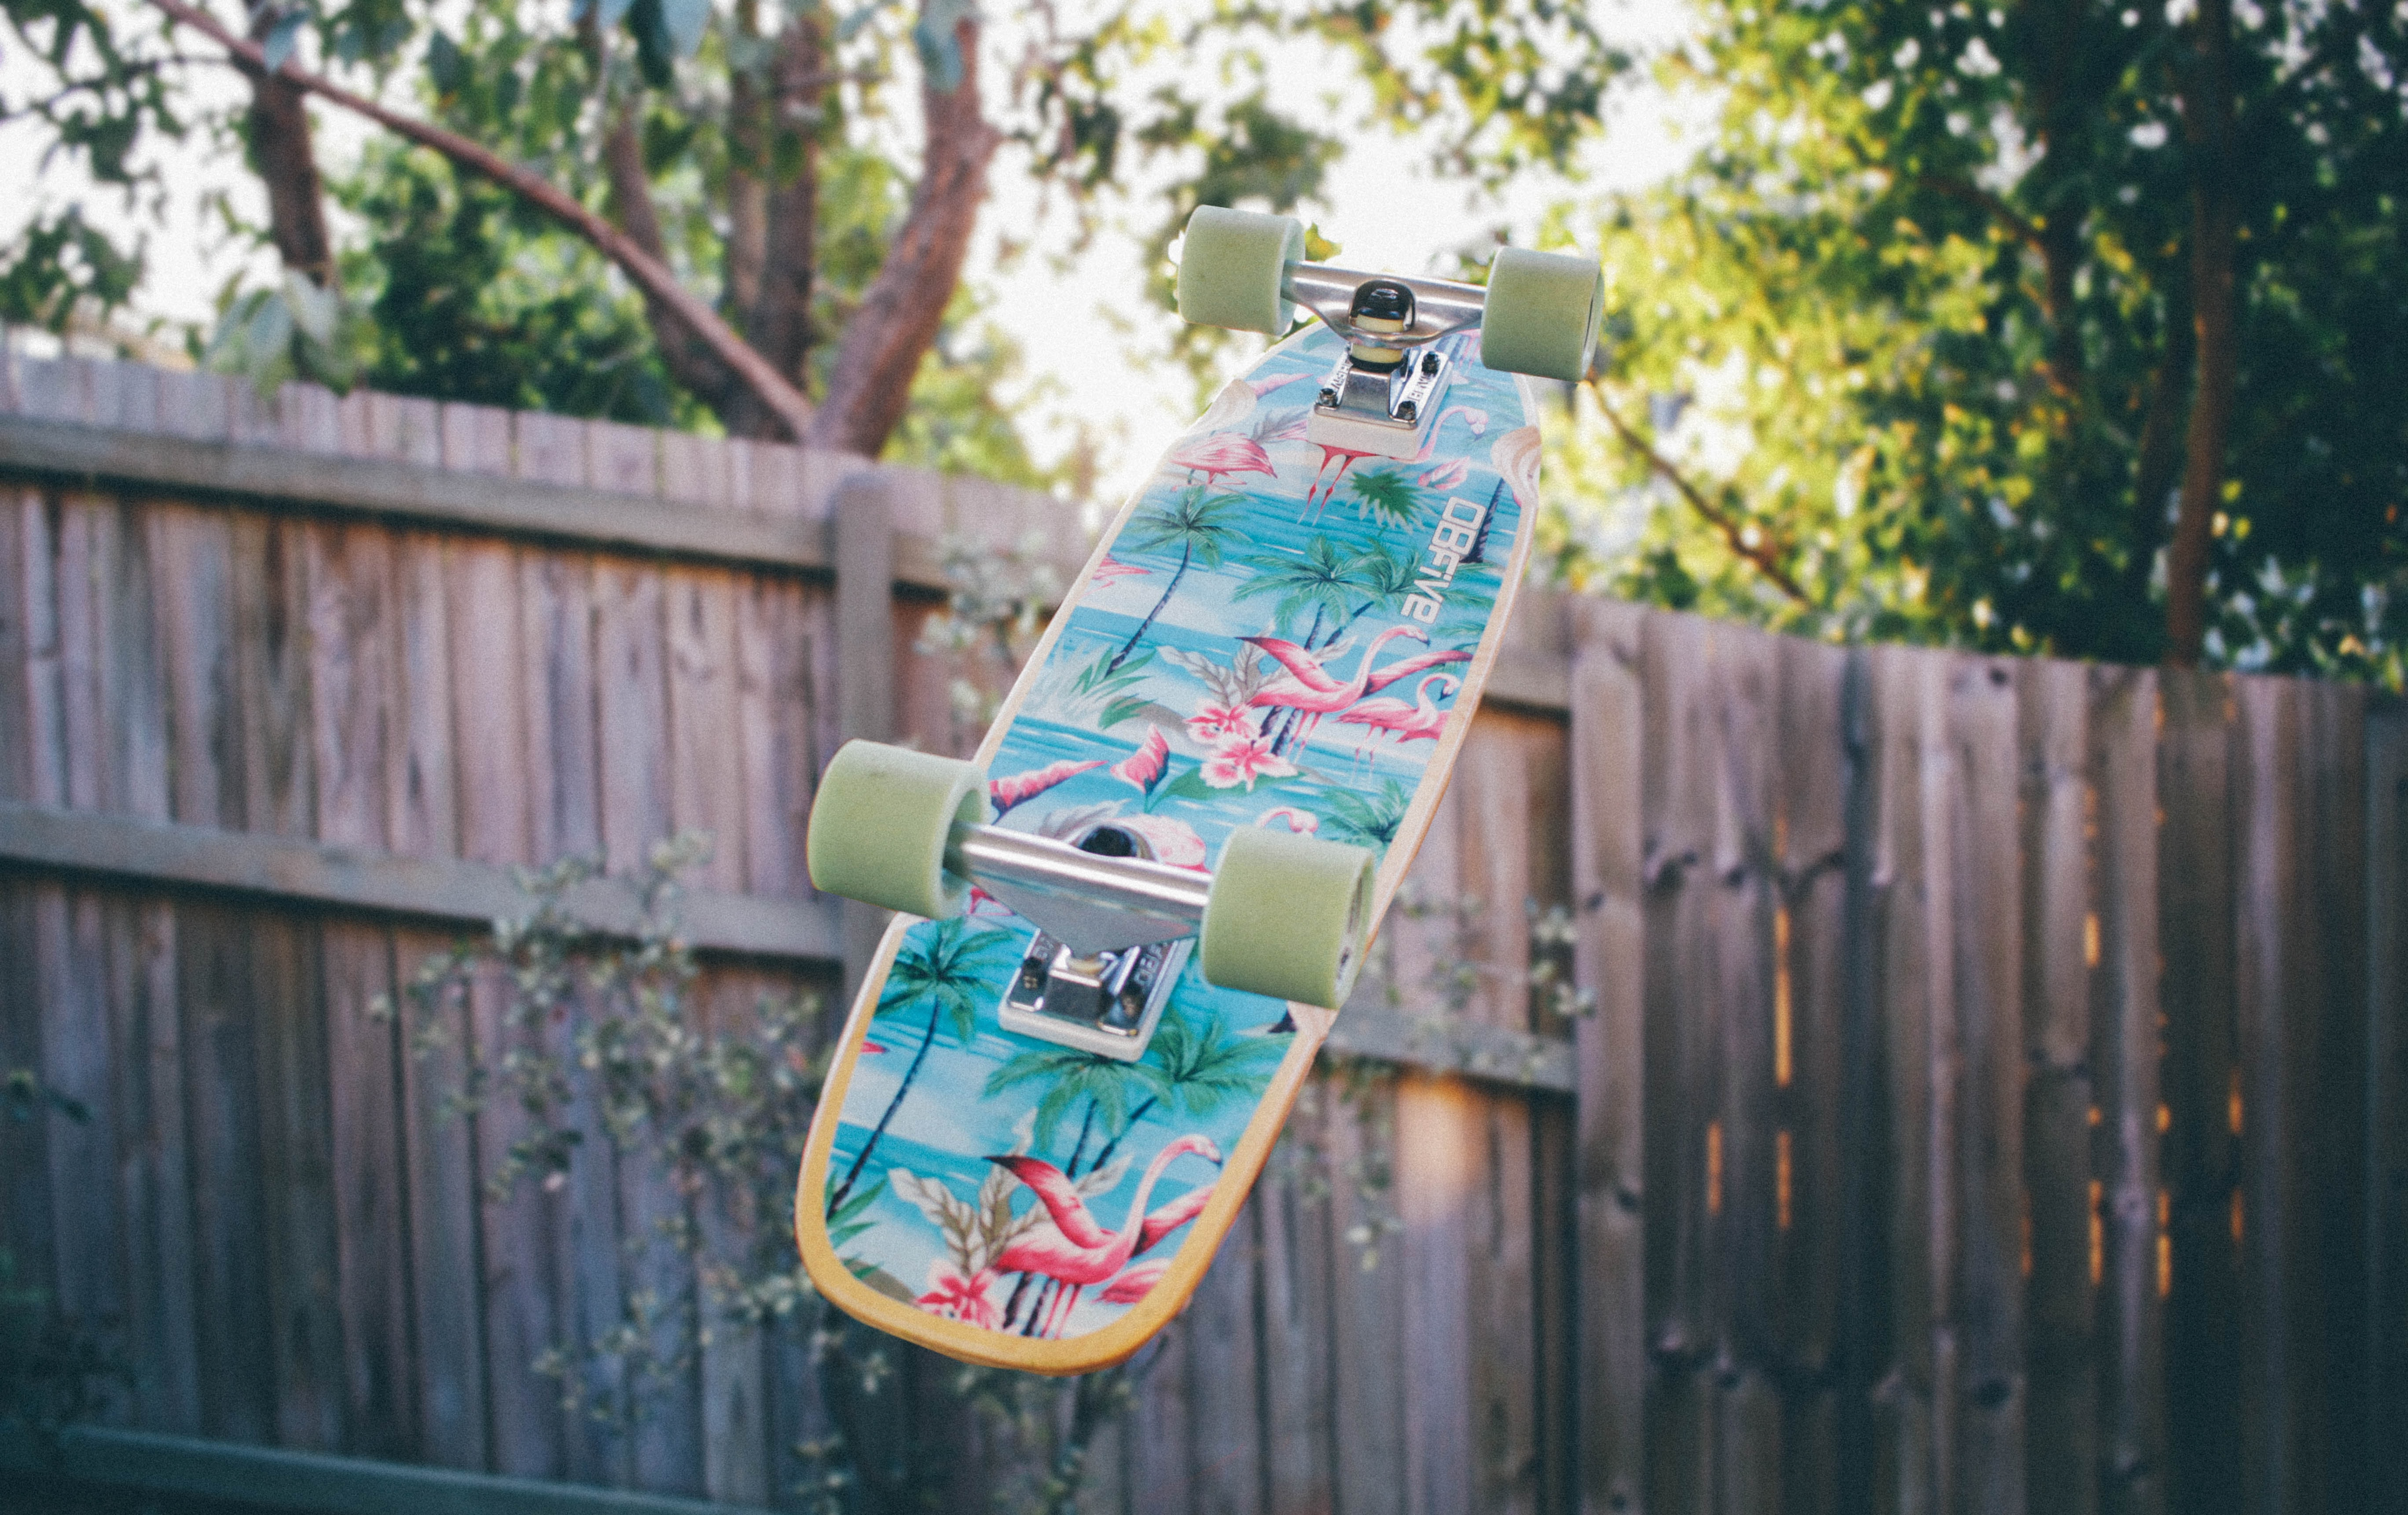 A colorful skateboard suspended in the air upside-down